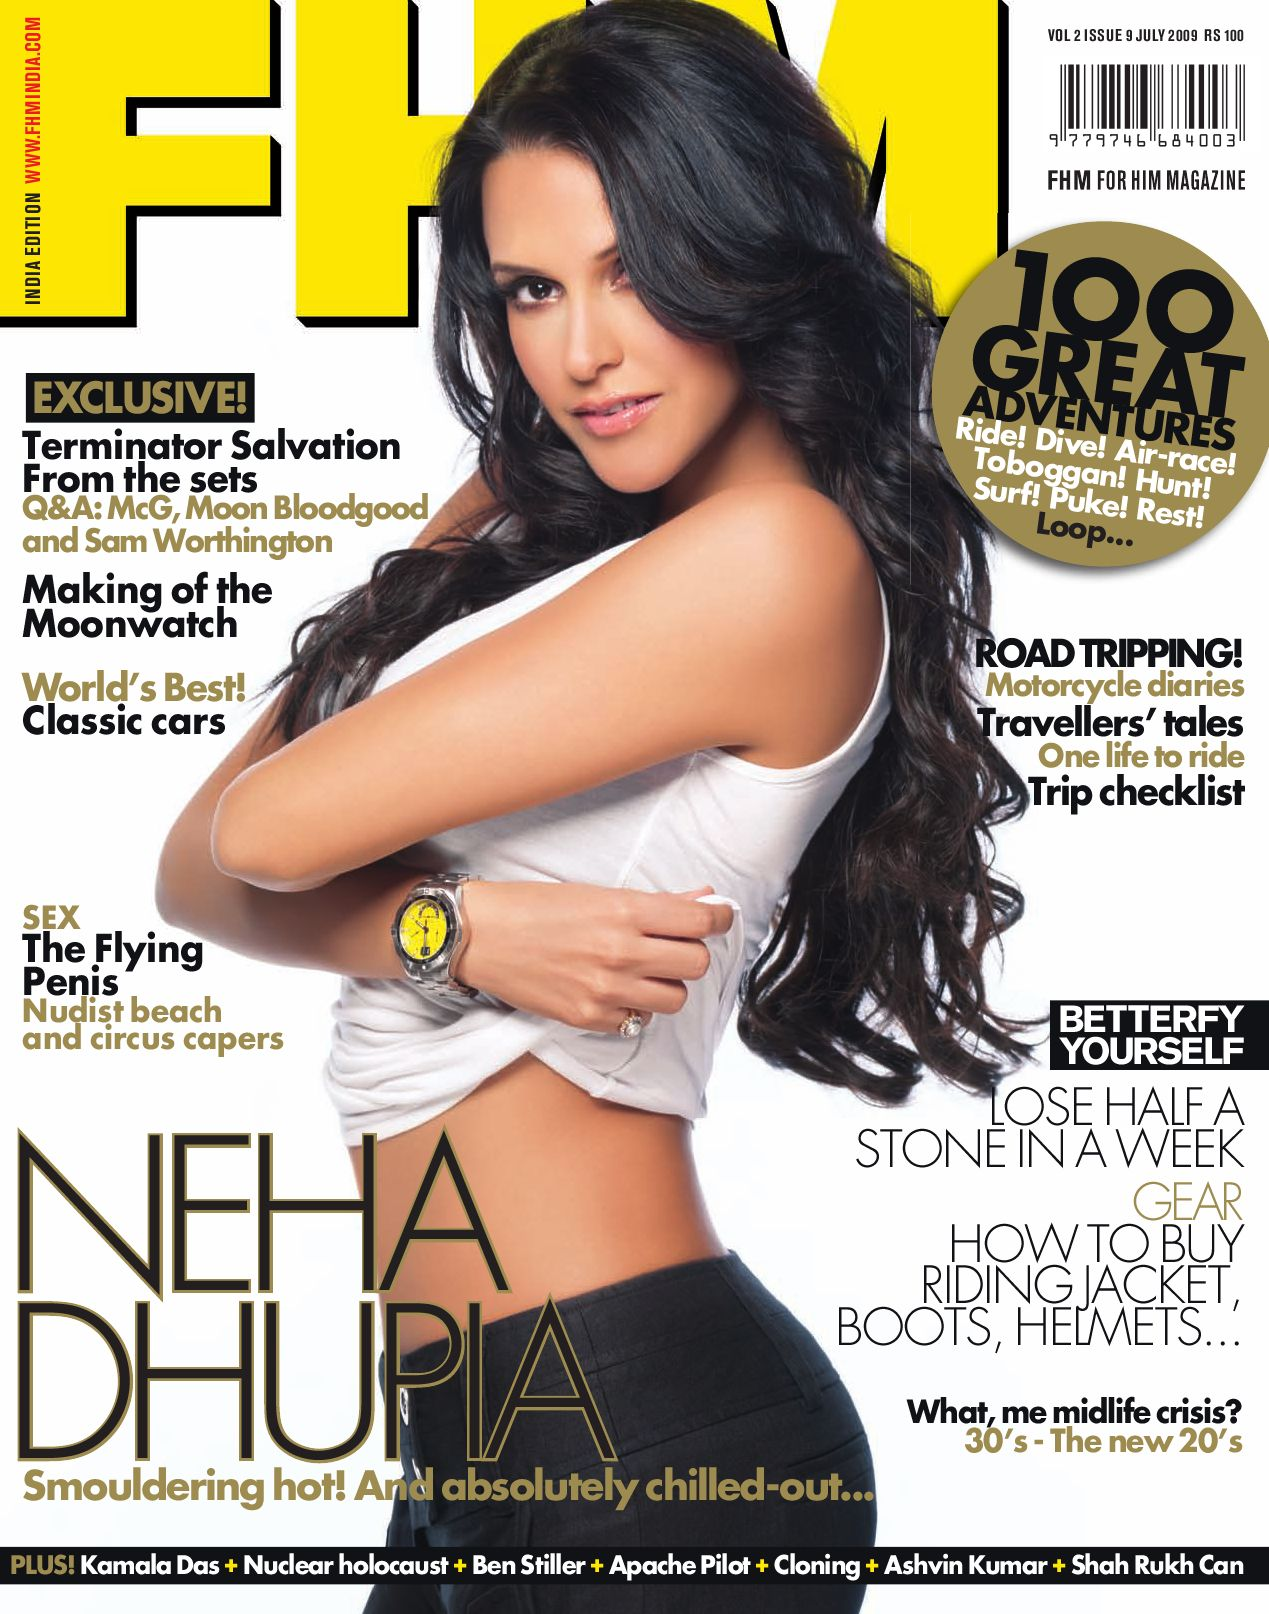 FHM INDIA MAGAZINE EBOOK